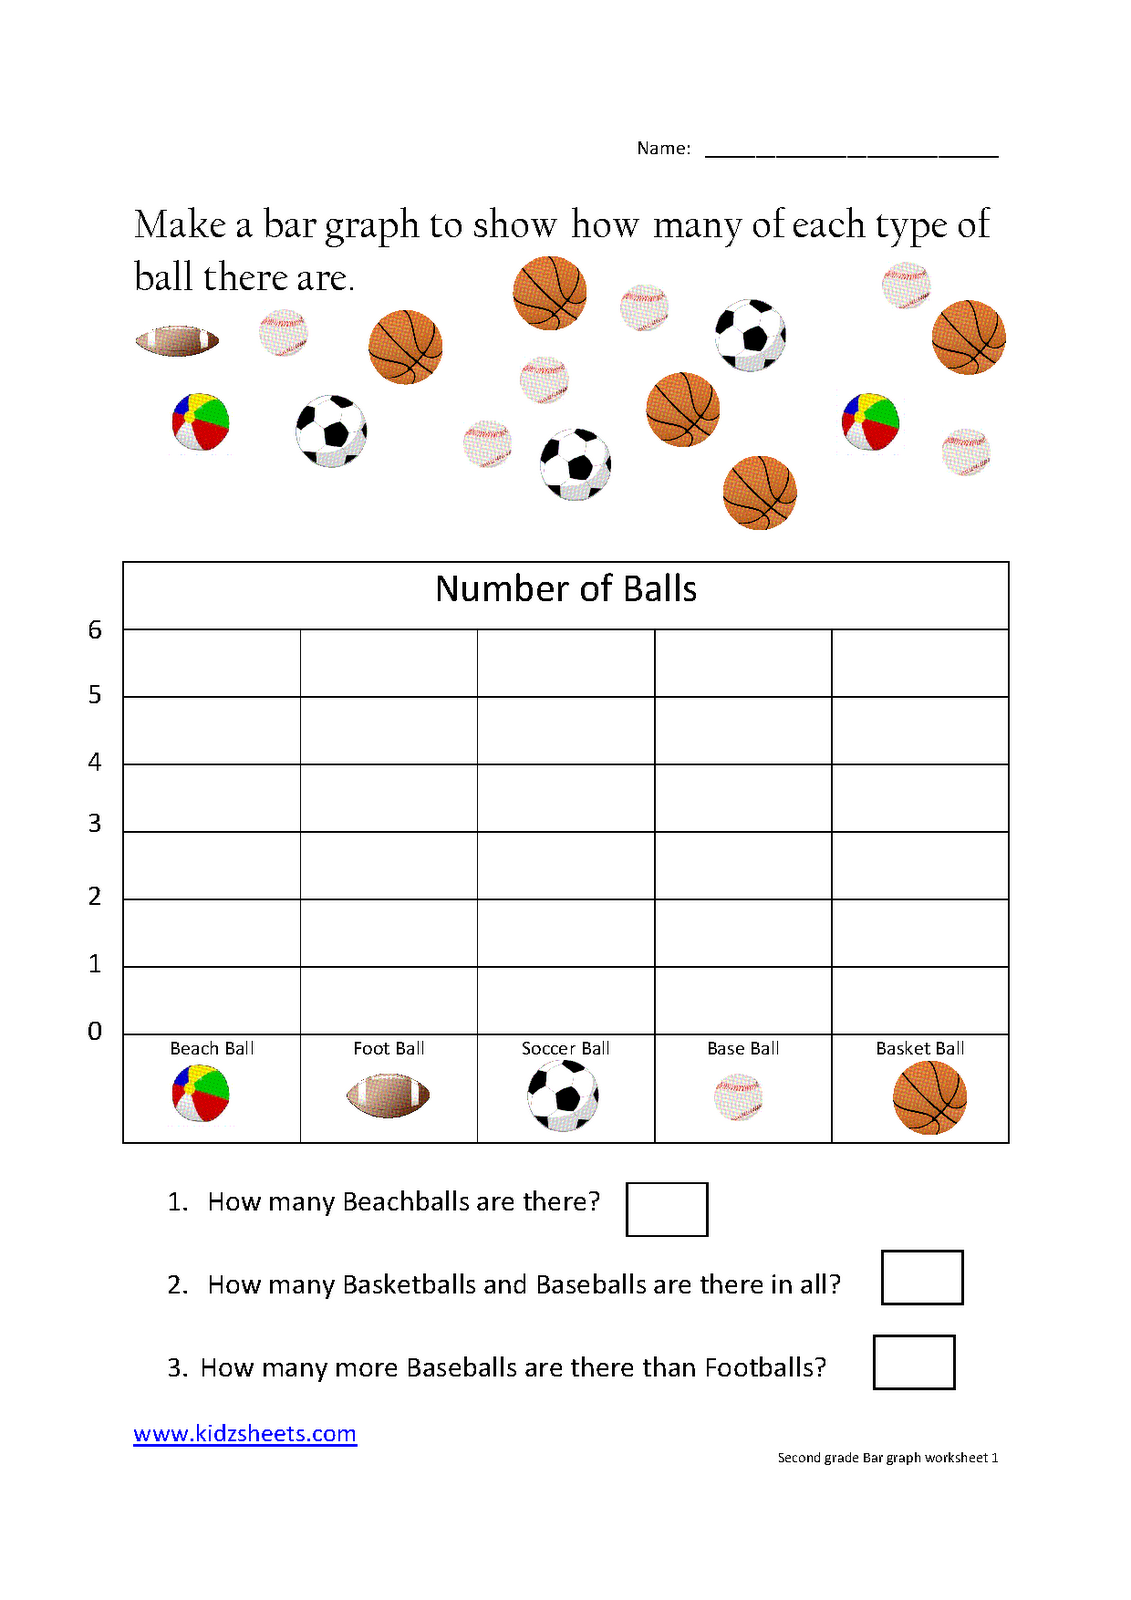 Printables Graph Worksheets For 2nd Grade kidz worksheets second grade bar graph worksheet1 graph